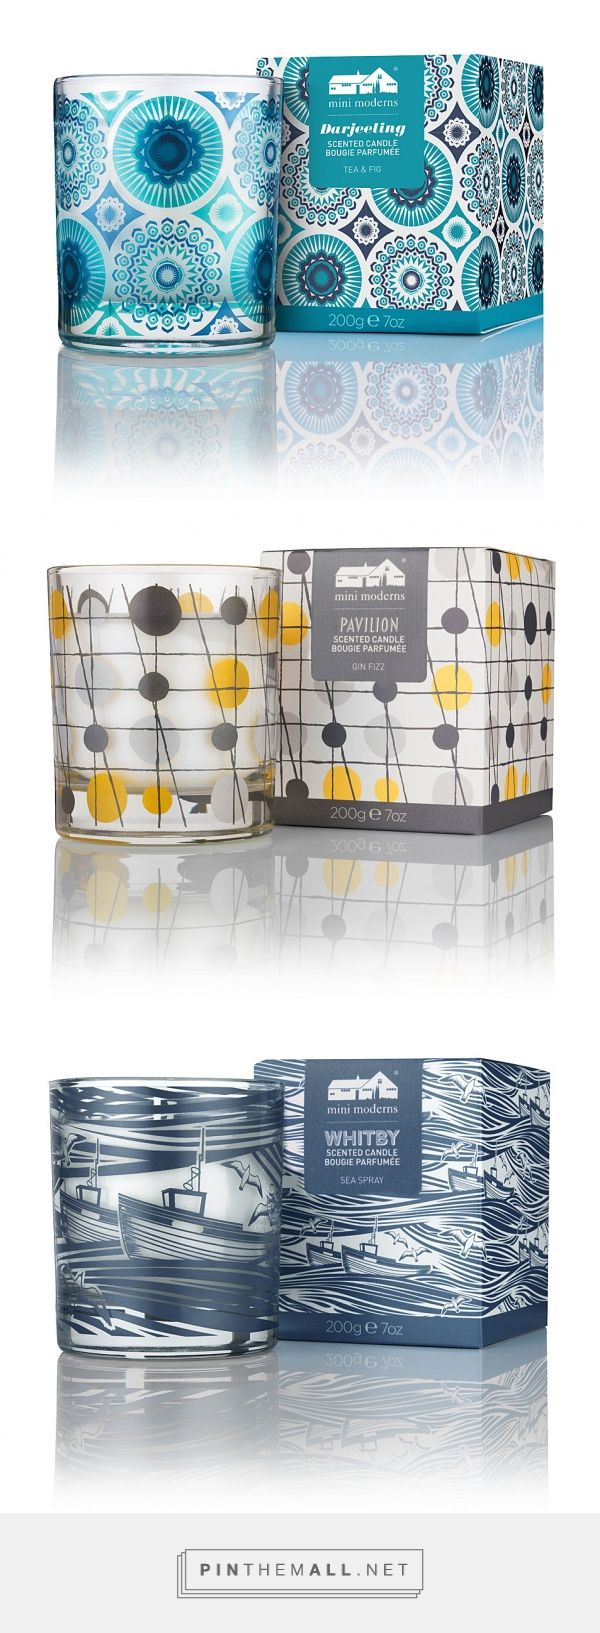 Mini Moderns Home Fragrance - Packaging of the World - Creative Package Design Gallery - http://www.packagingoftheworld.com/2016/07/mini-moderns-home-fragrance.html